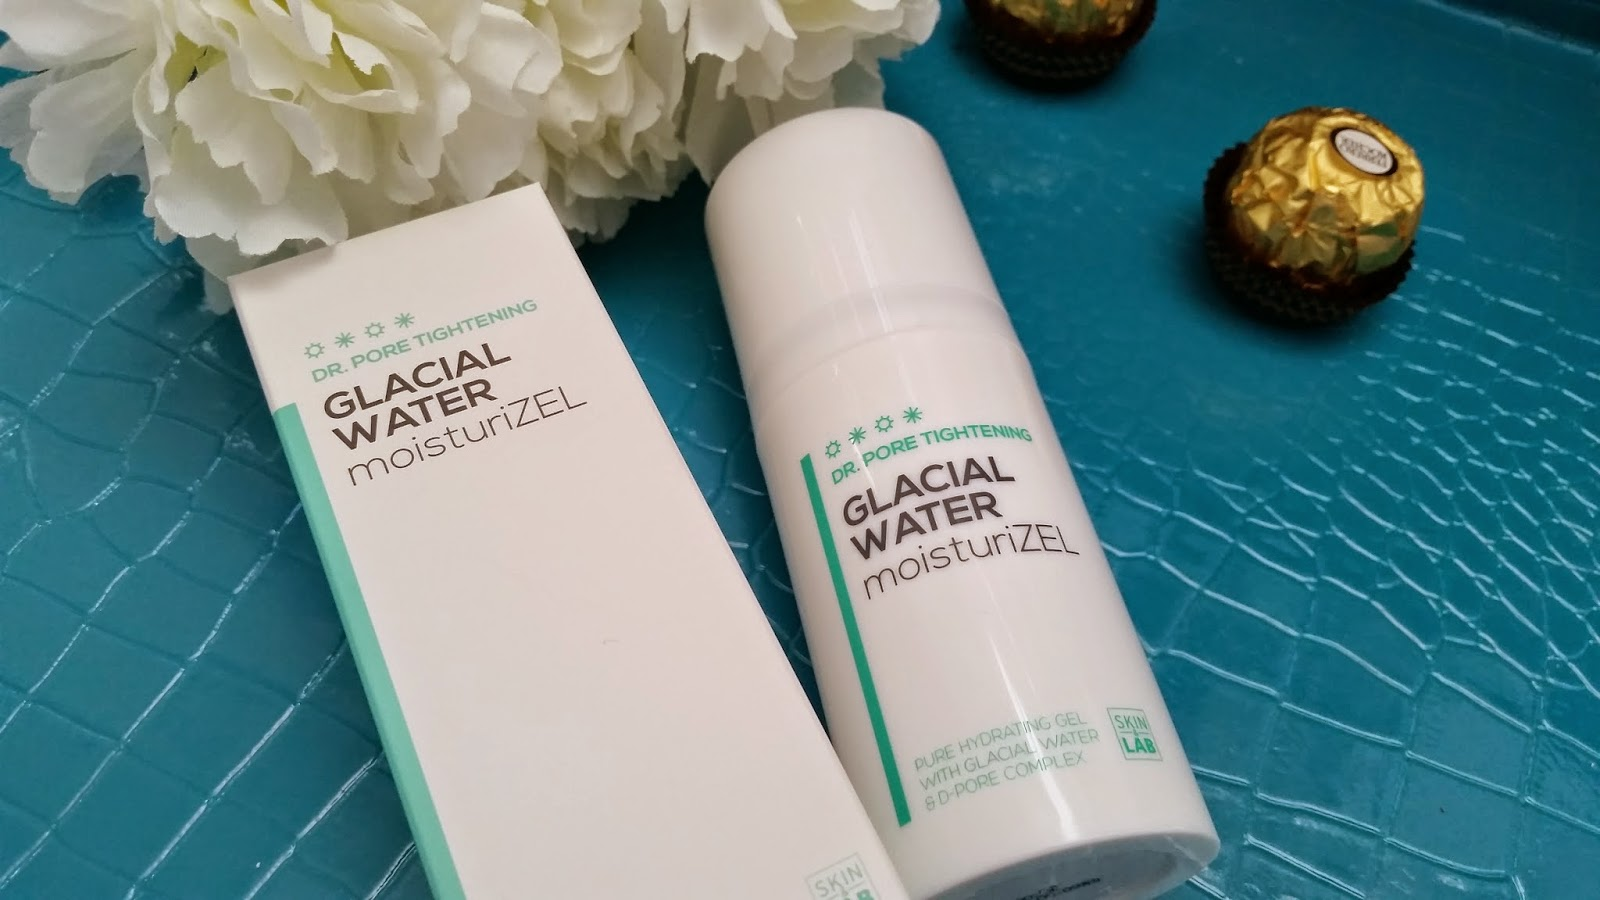 Skin&Lab Dr. Pore Tightening: Glacial Water Moisturizel Review